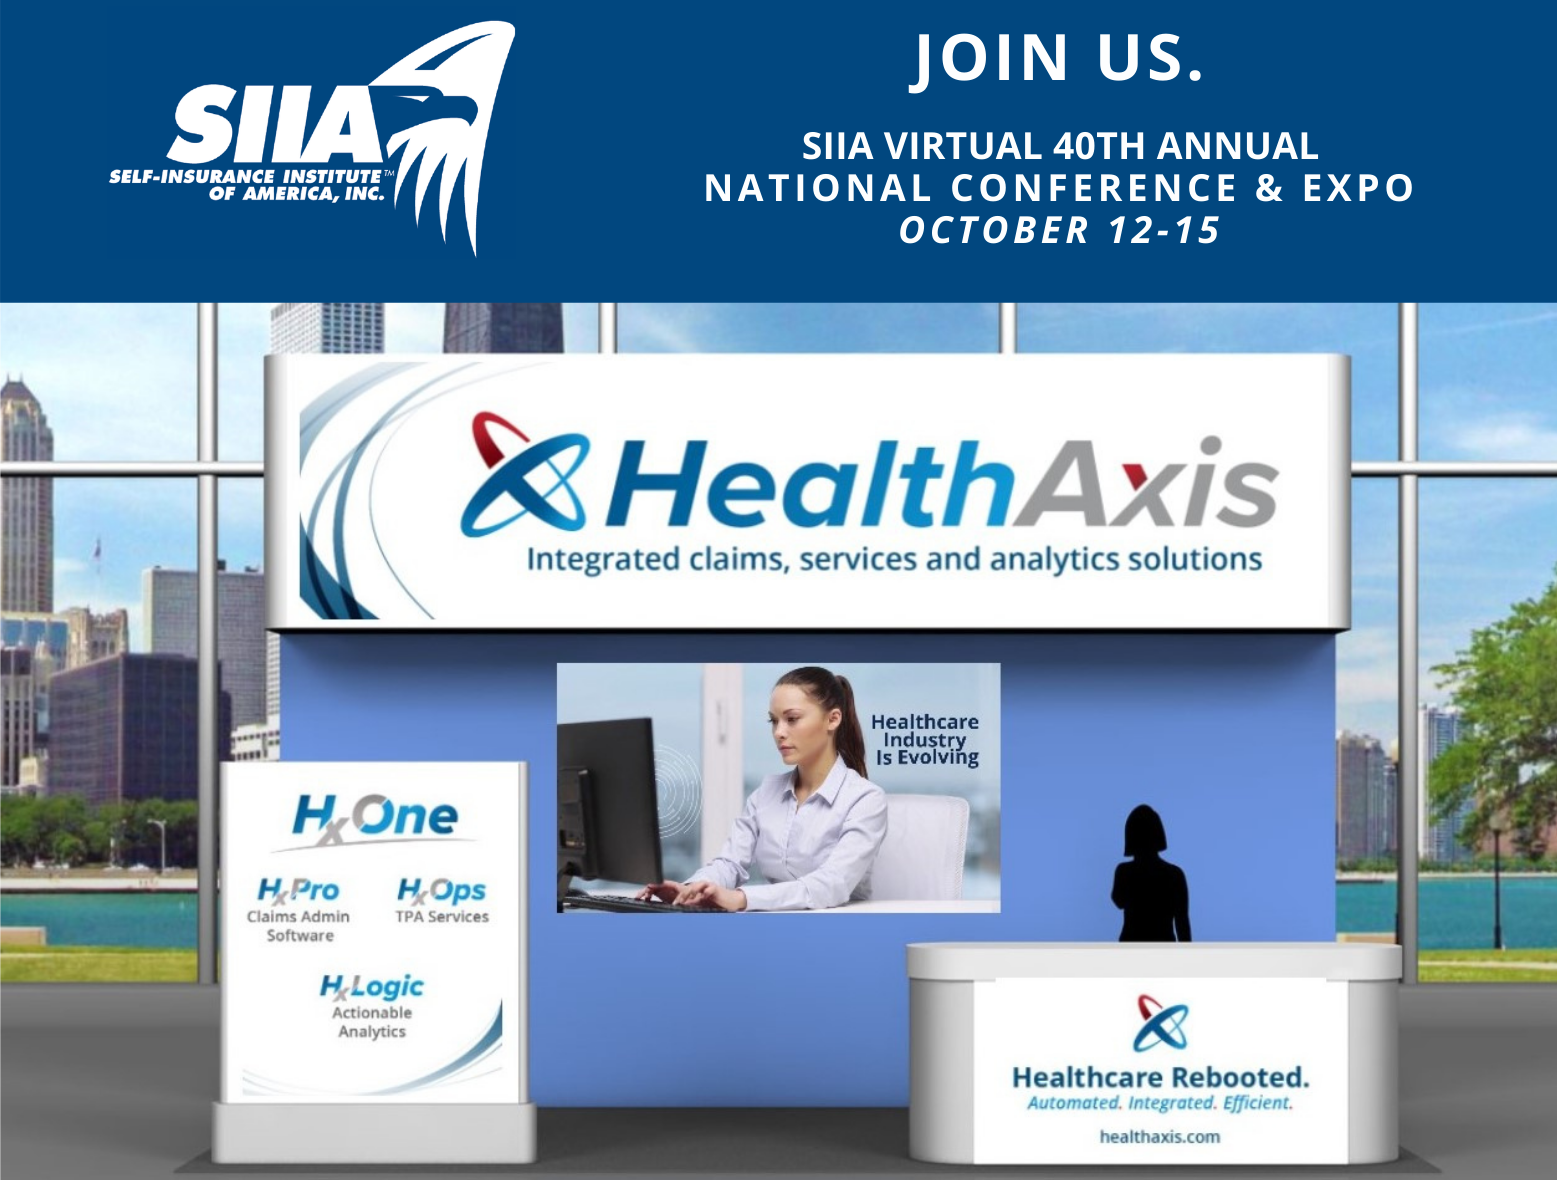 HealthAxis Participating In The SIIA Virtual 40th Annual National Conference & EXPO